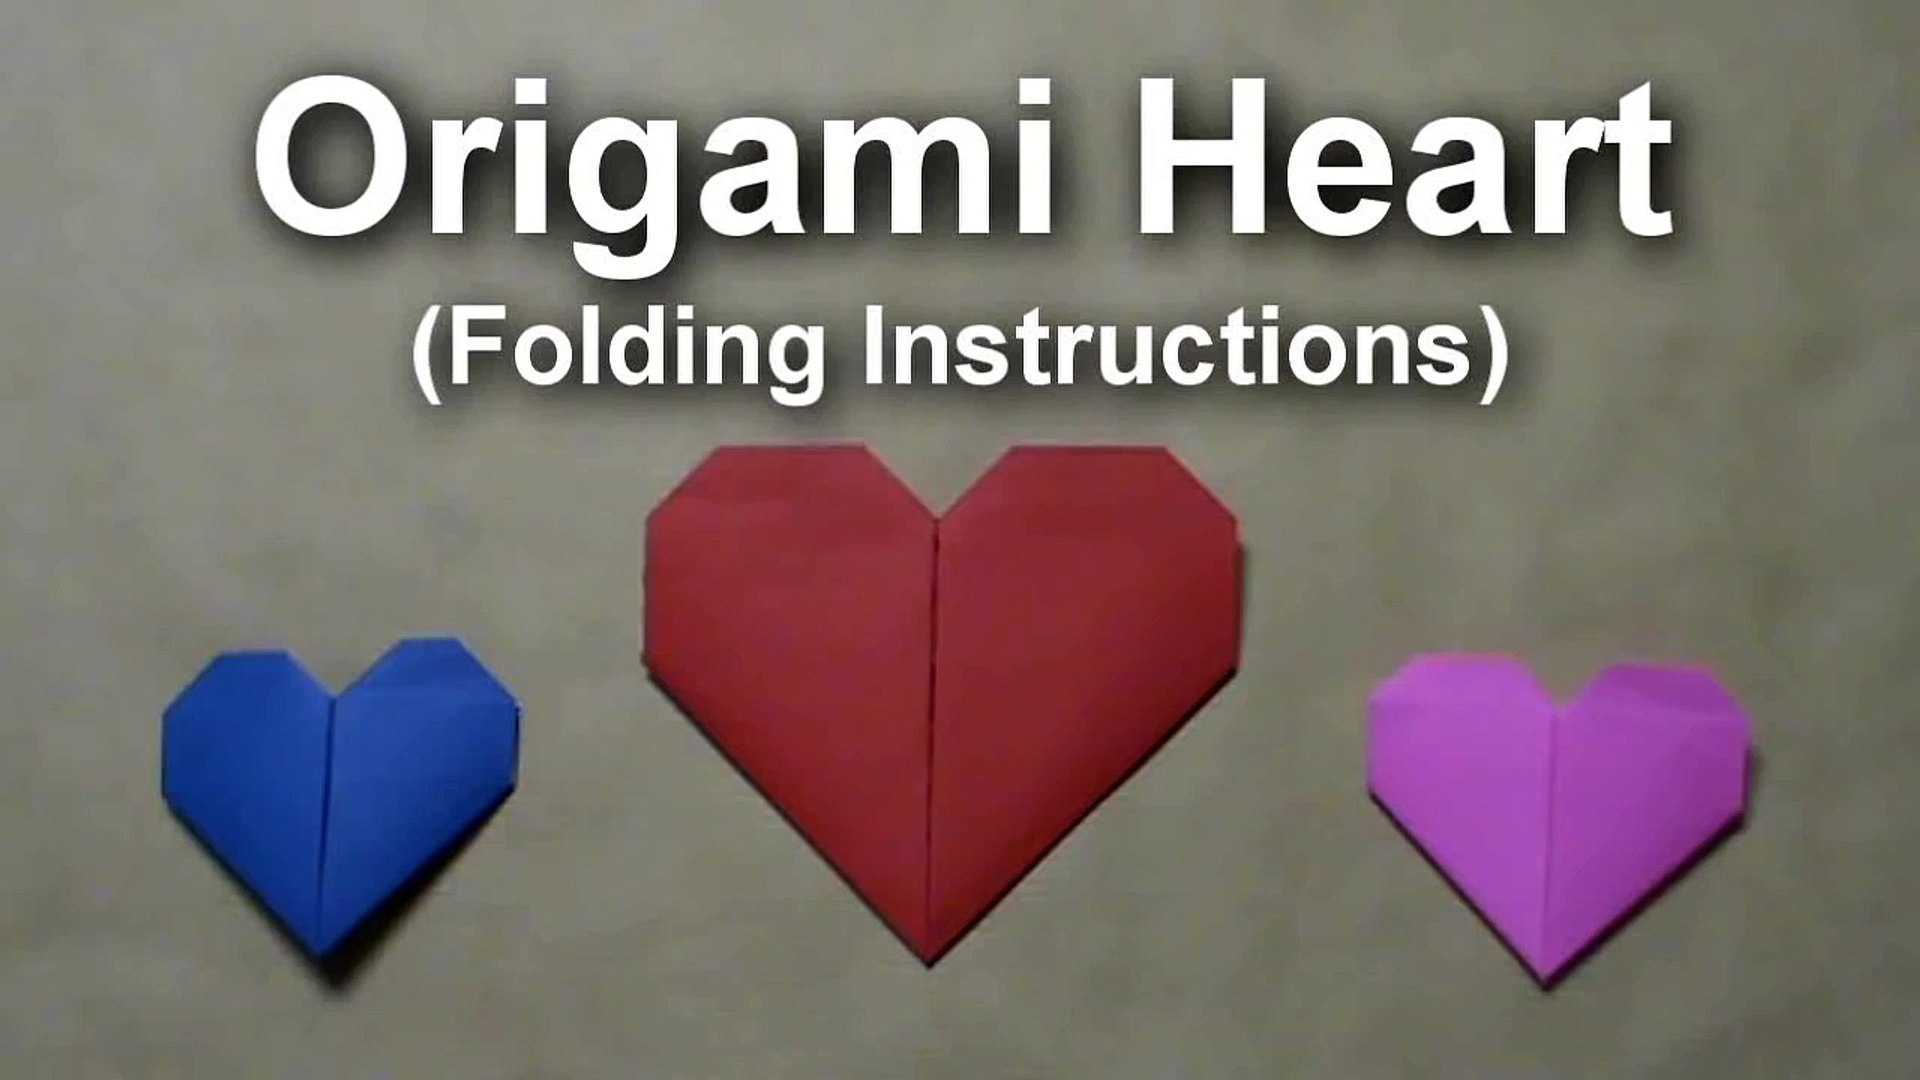 Origami Heart Check Folding Instructions | Origami Instruction | 1080x1920